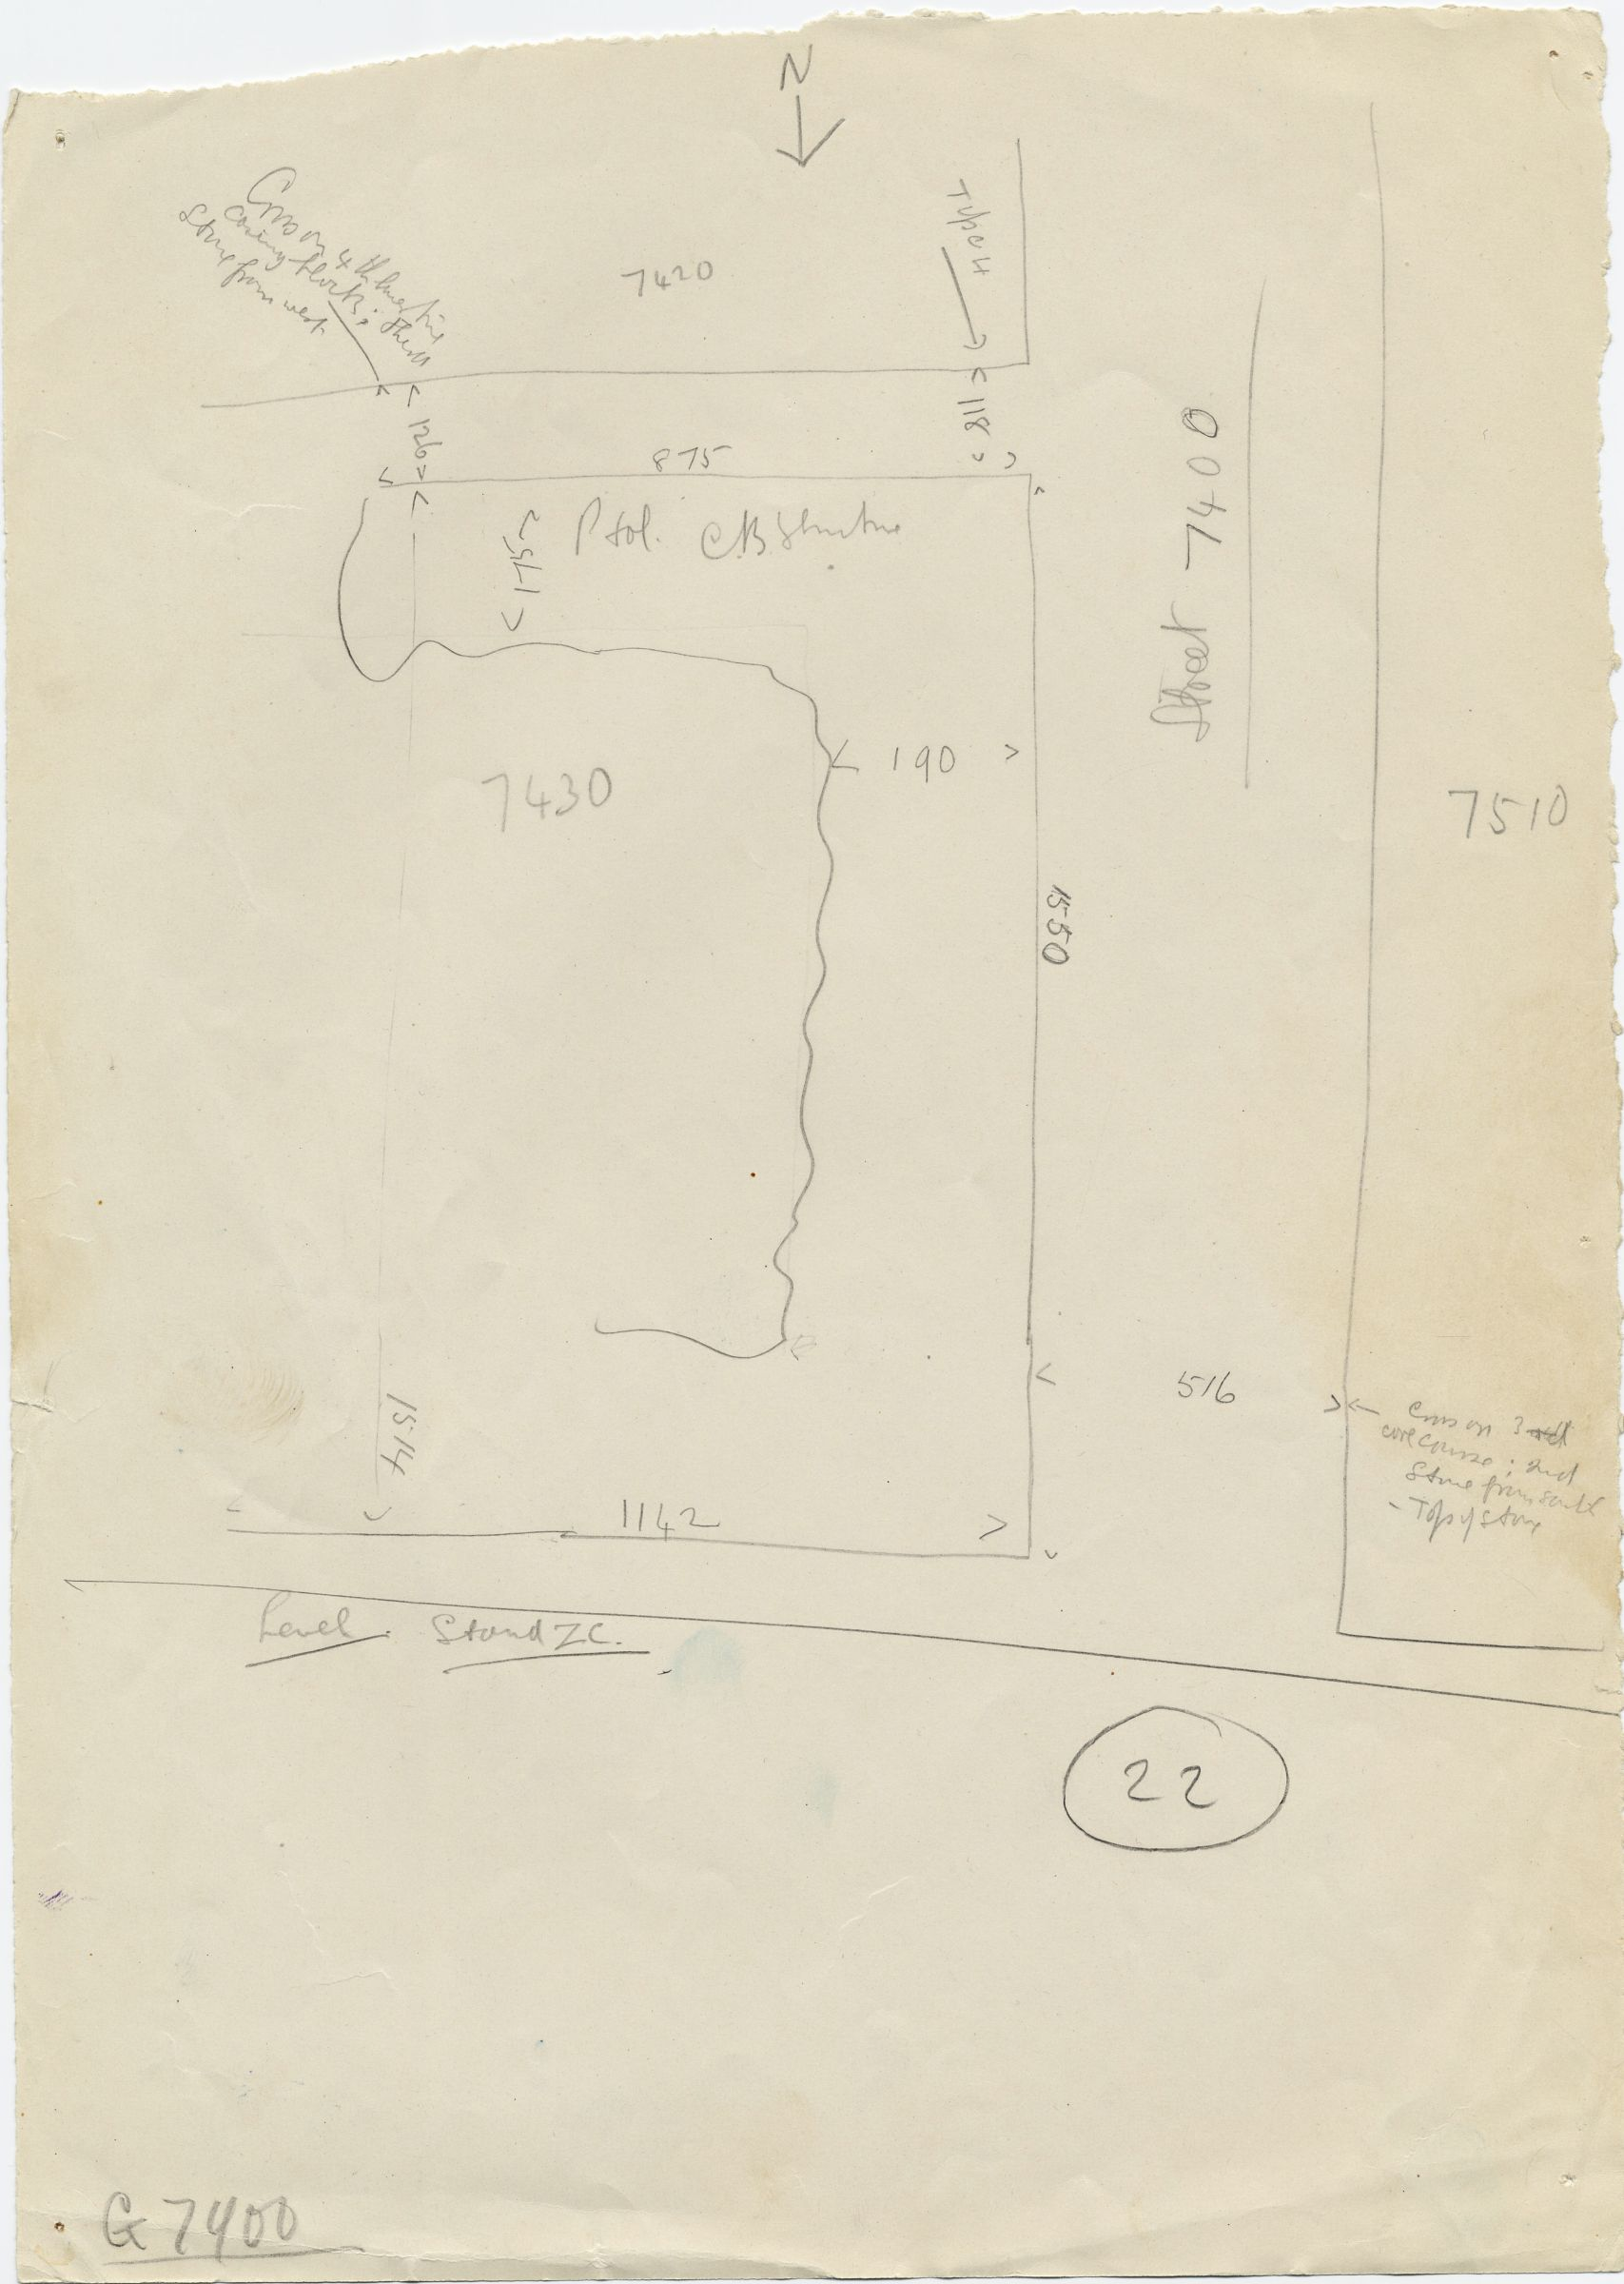 Maps and plans: Street G 7400 and Avenue G 2, intersection with Ptolemaic structure on G 7430-7440